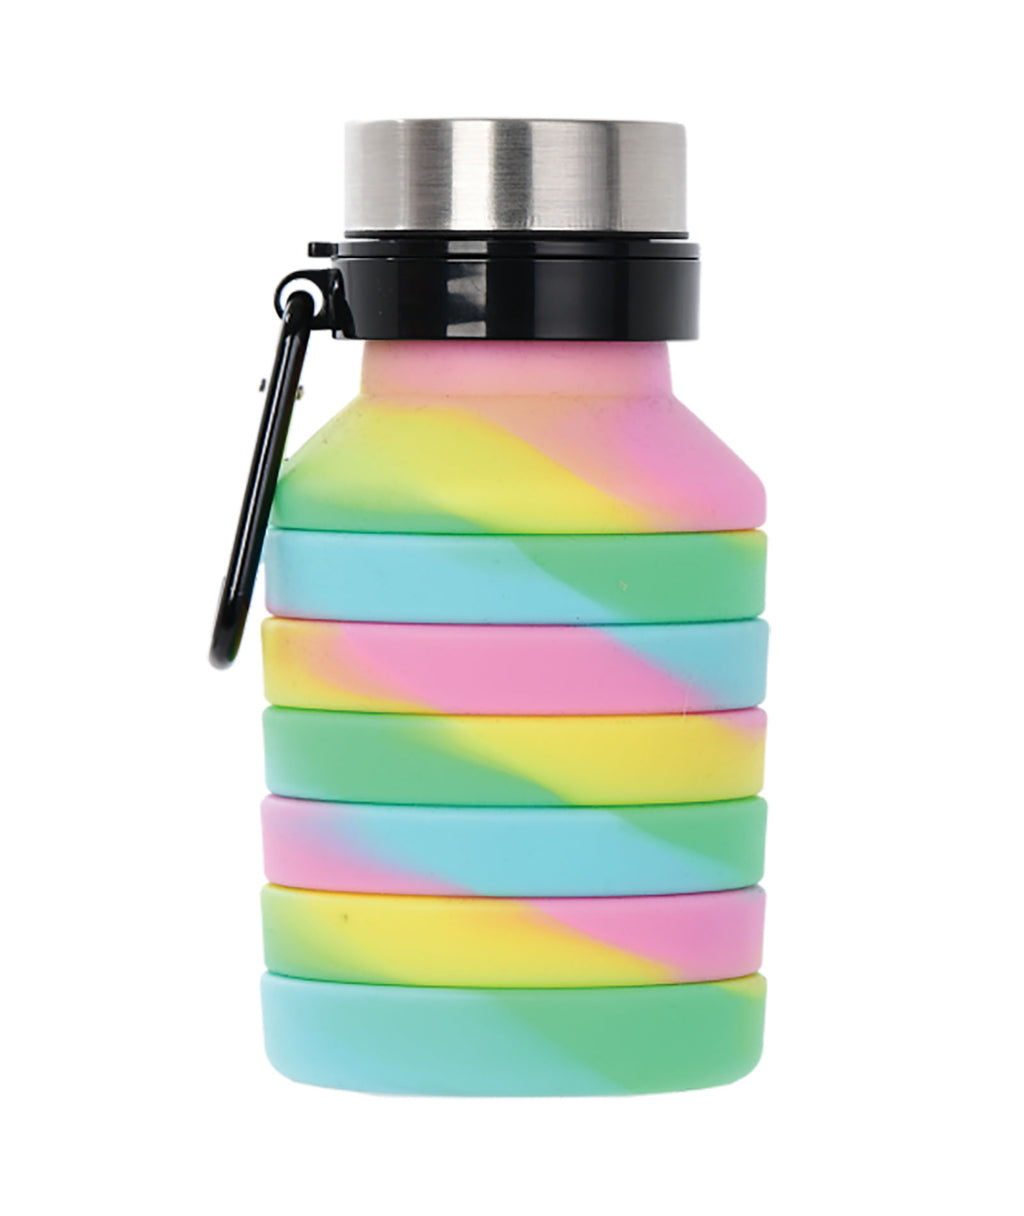 iScream Swirl Tie Dye Collapsible Water Bottle